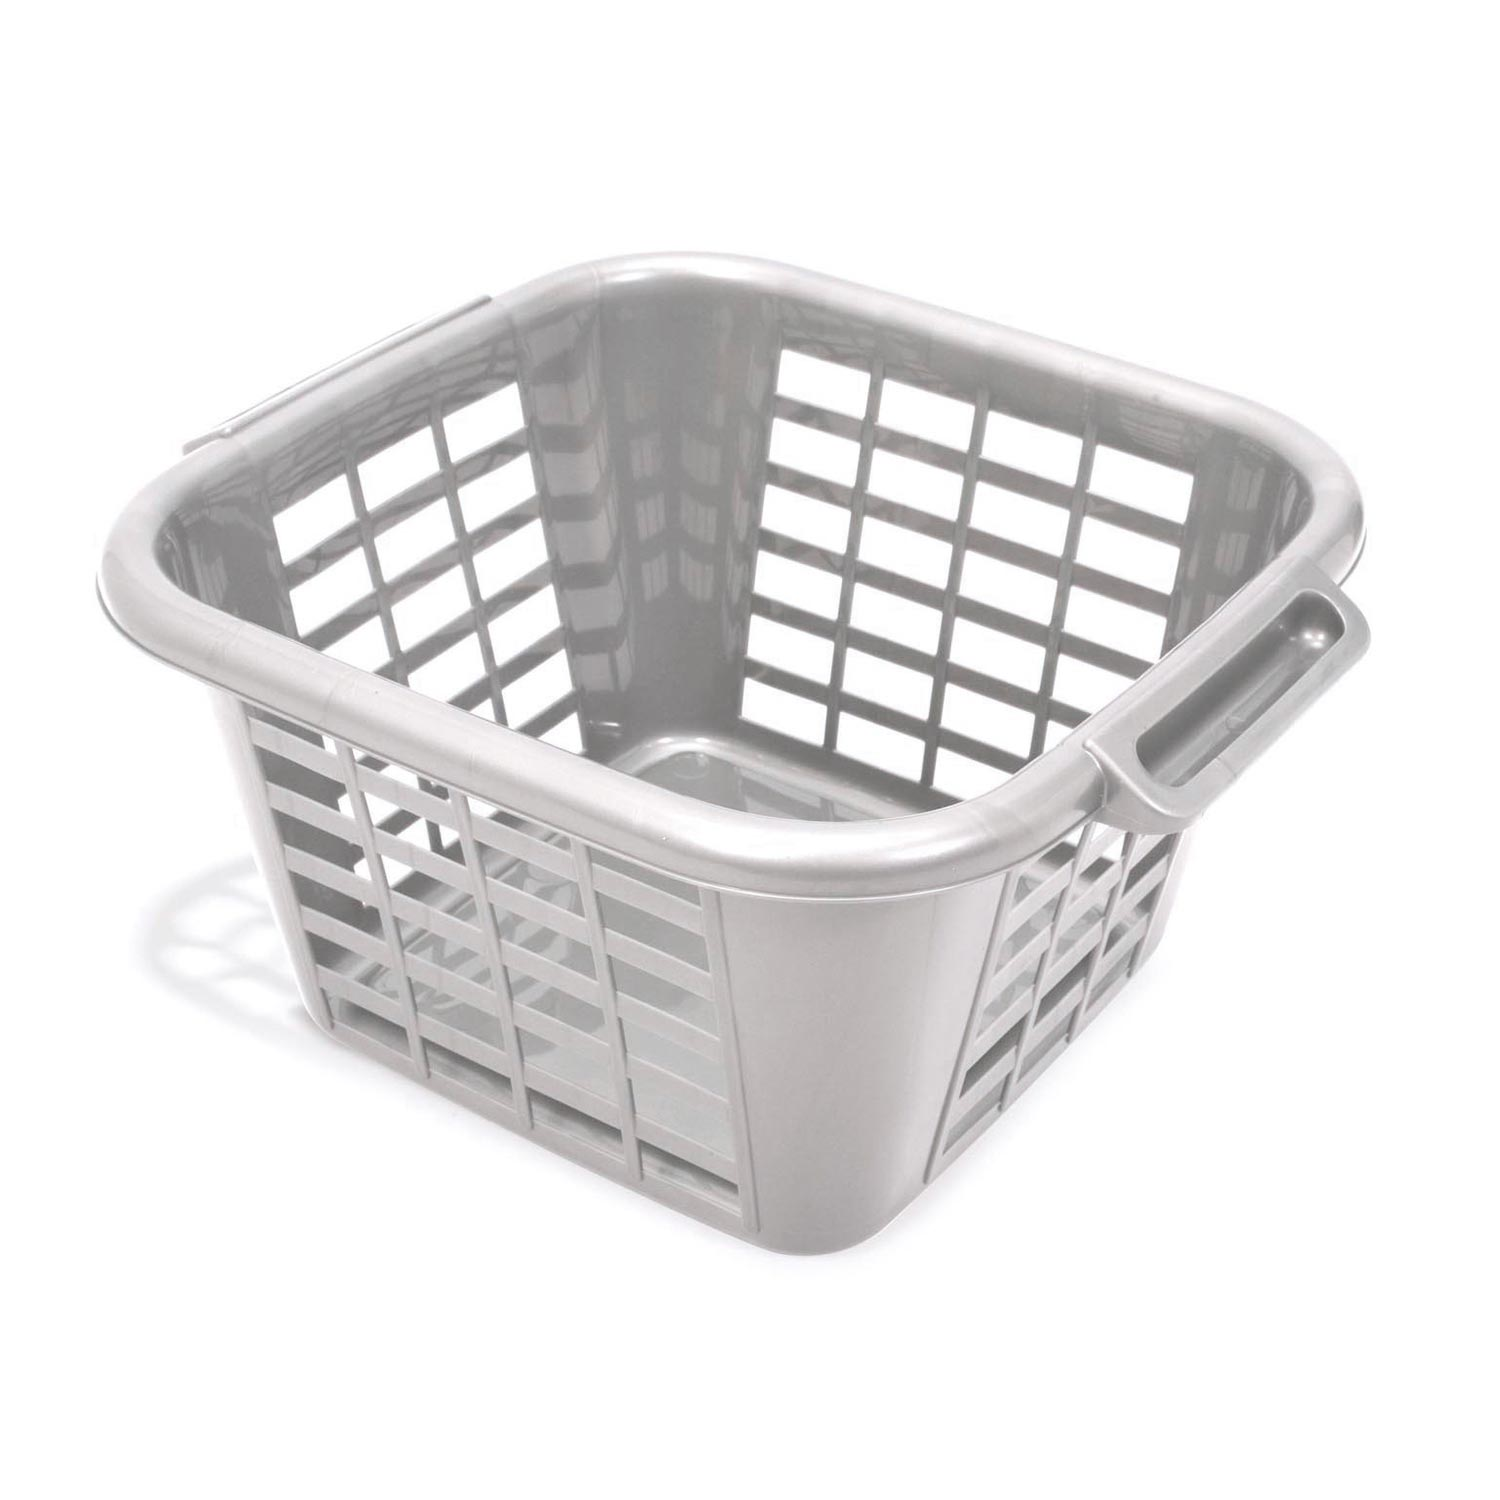 Image of 24L Square Laundry Basket, Metallic